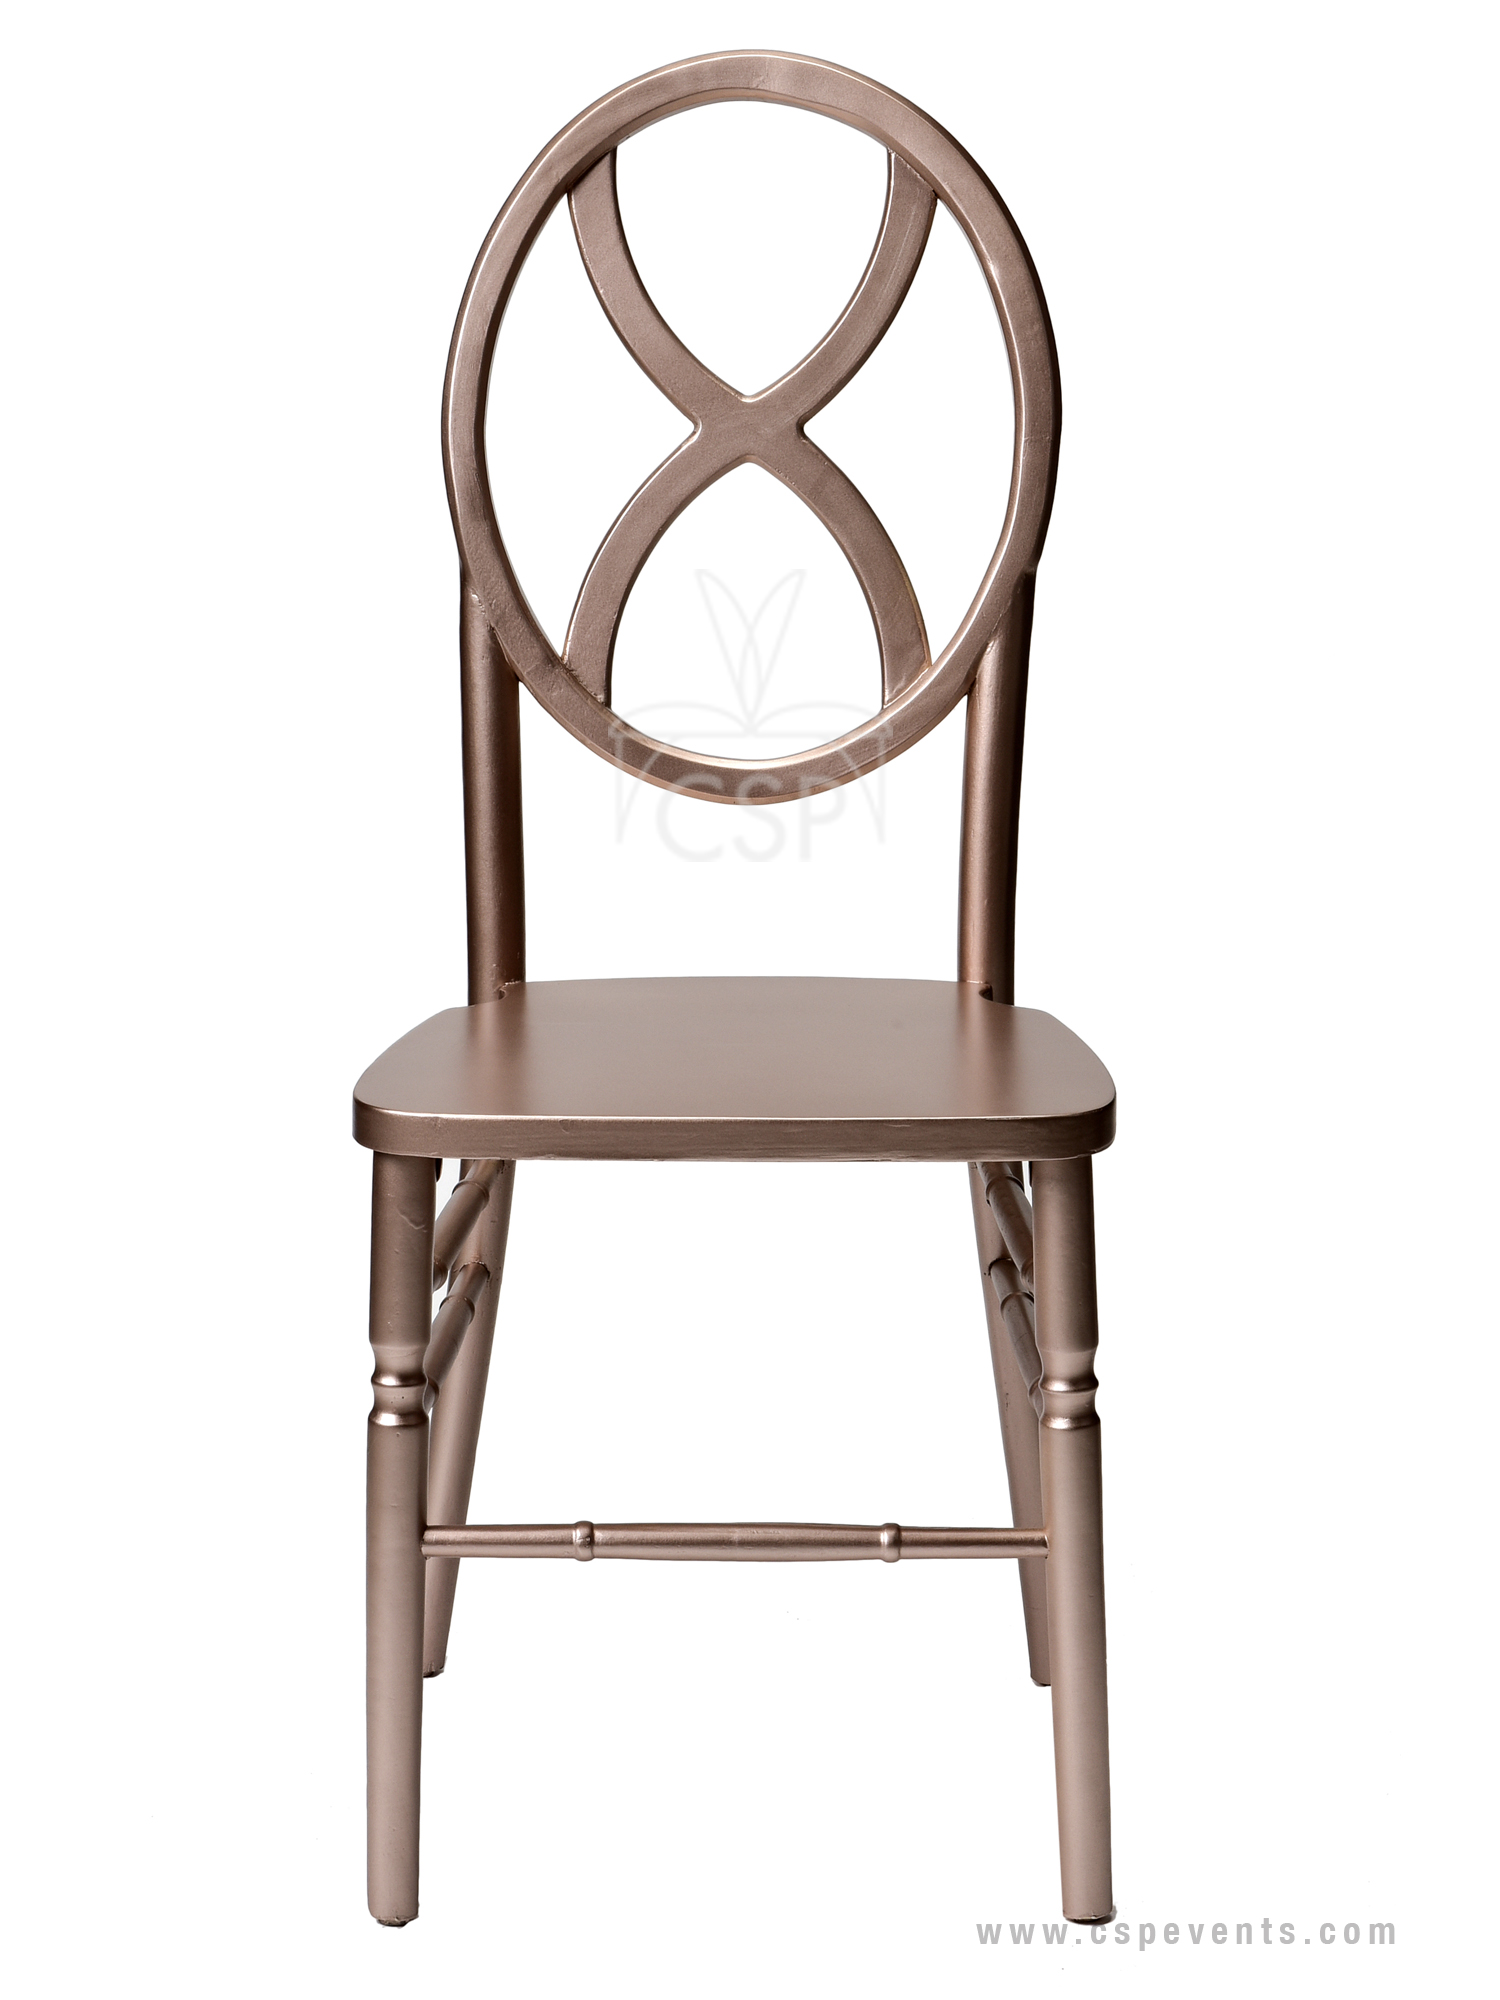 New Veronique Series Stackable Sandglass Dining Chair